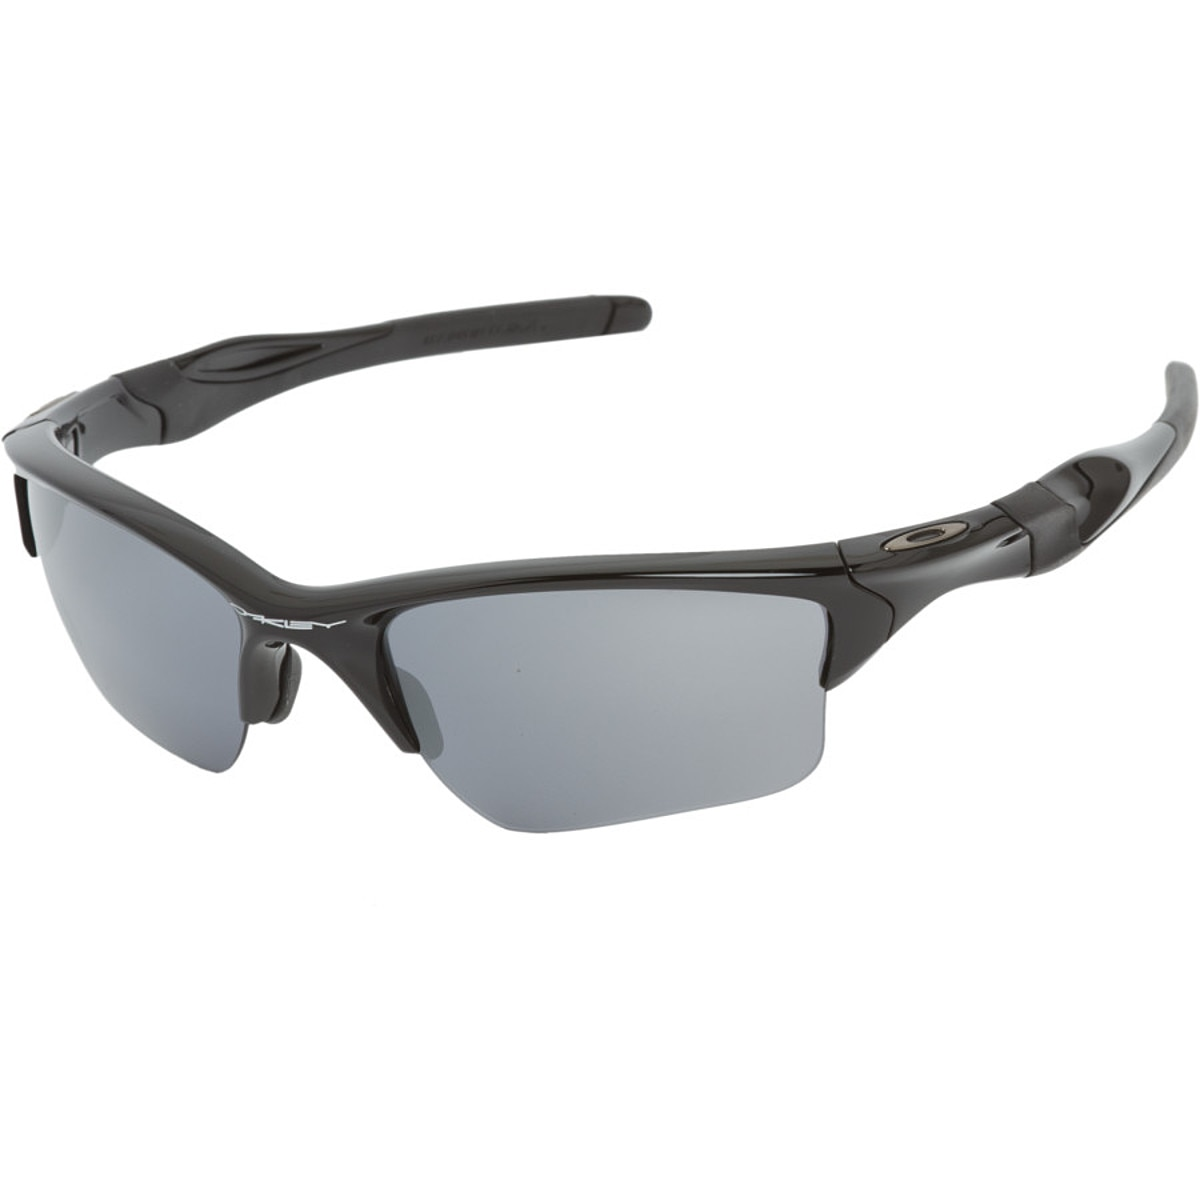 oakley half jacket replacement lenses black iridium polarized yms5  Oakley Half Jacket 20 XL Sunglasses